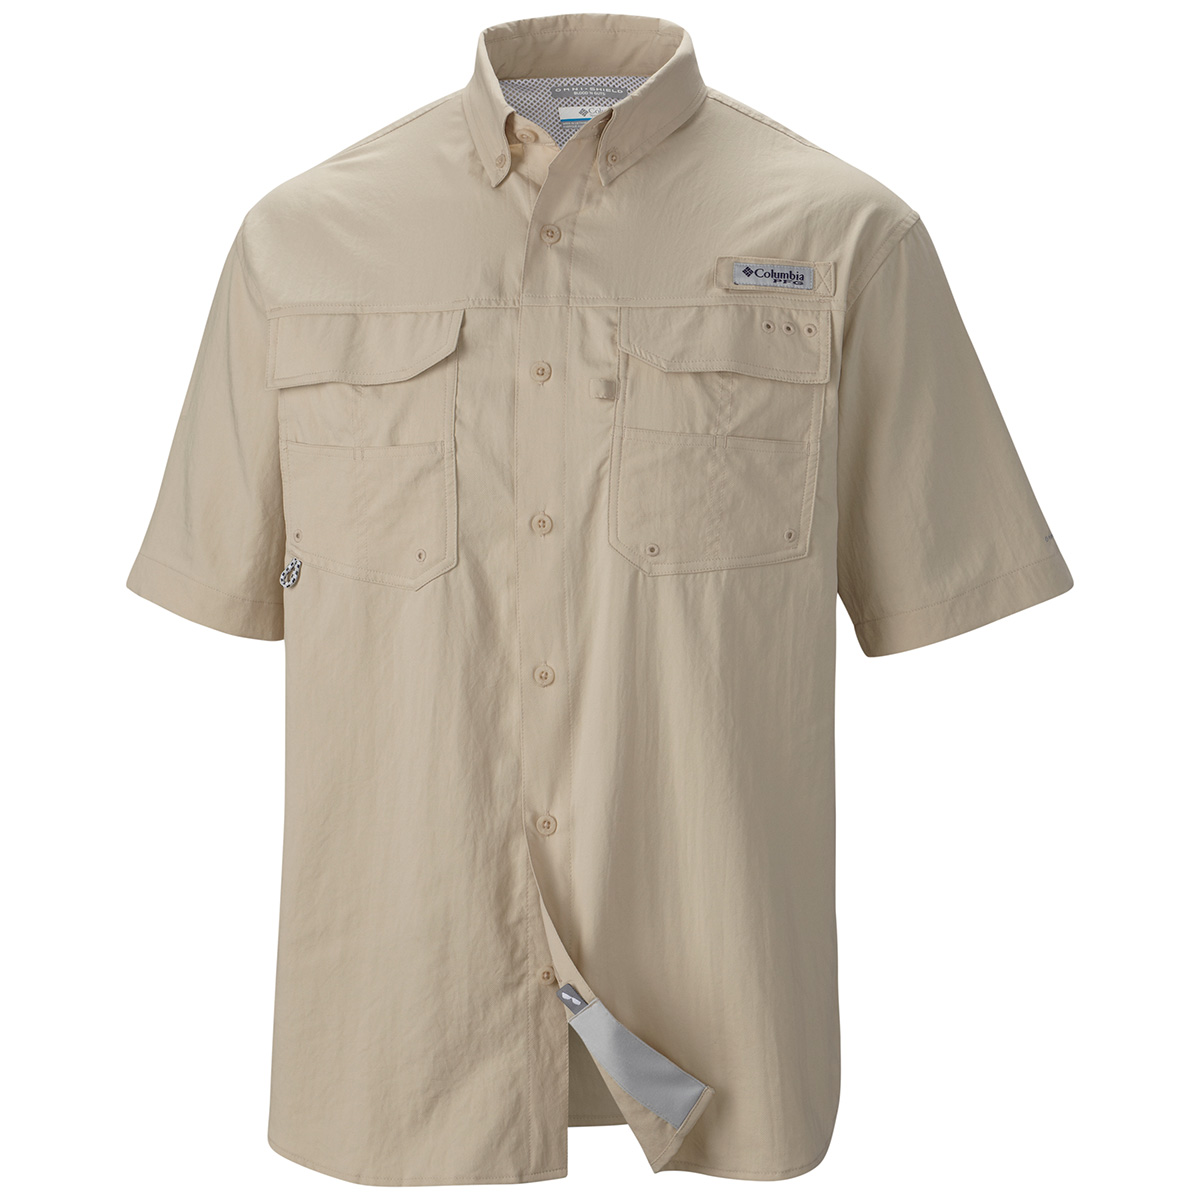 Columbia blood and guts iii short sleeve woven fishing for Columbia fishing shirts on sale